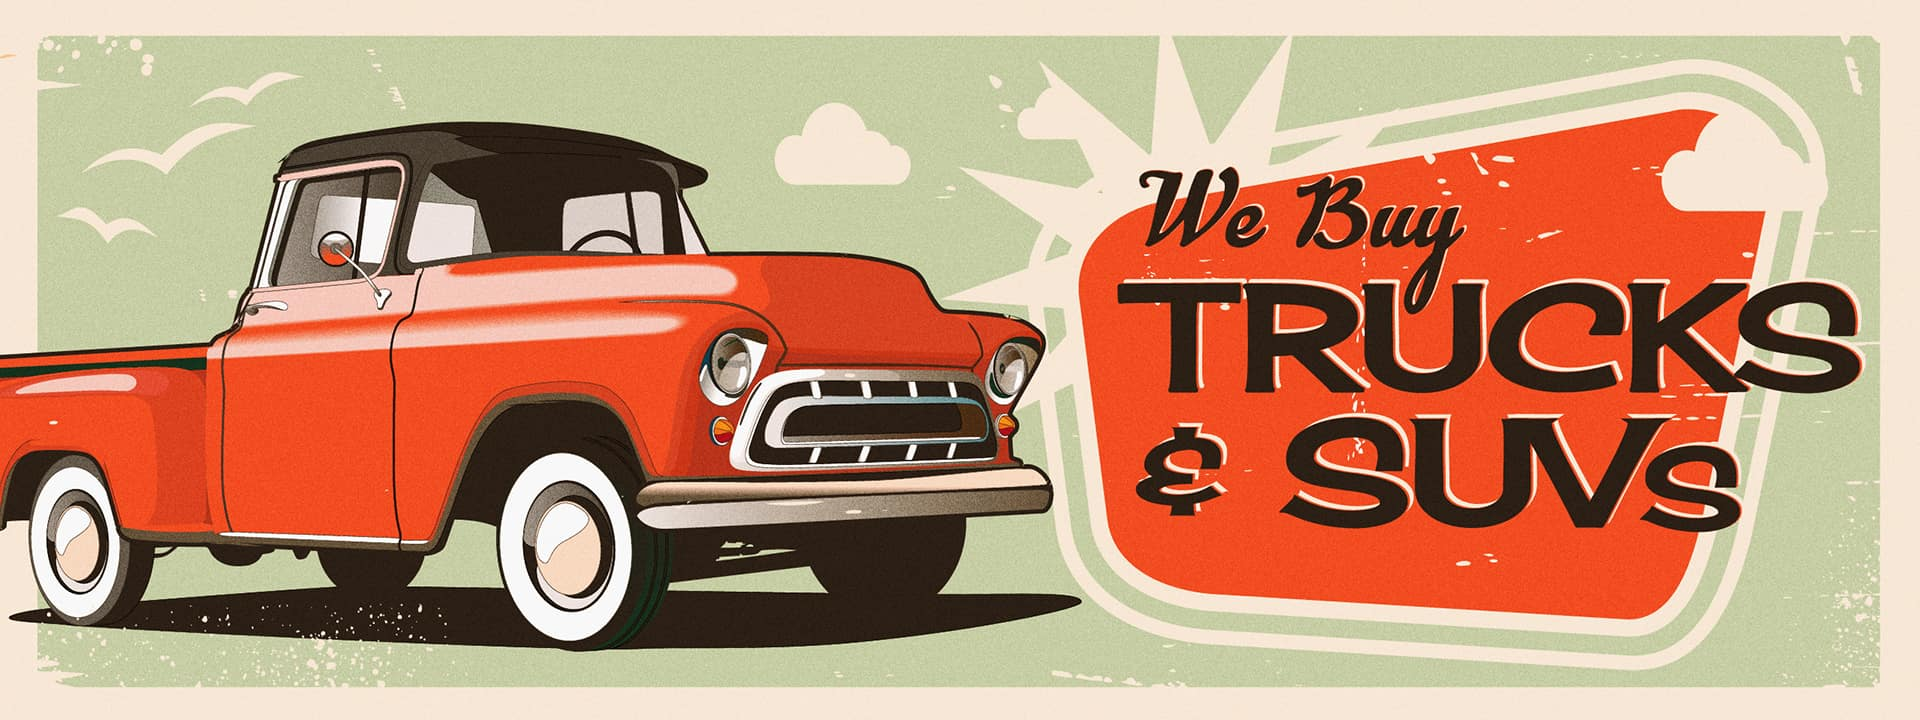 Old Retro Orange Truck with text We Buy Trucks and SUV's